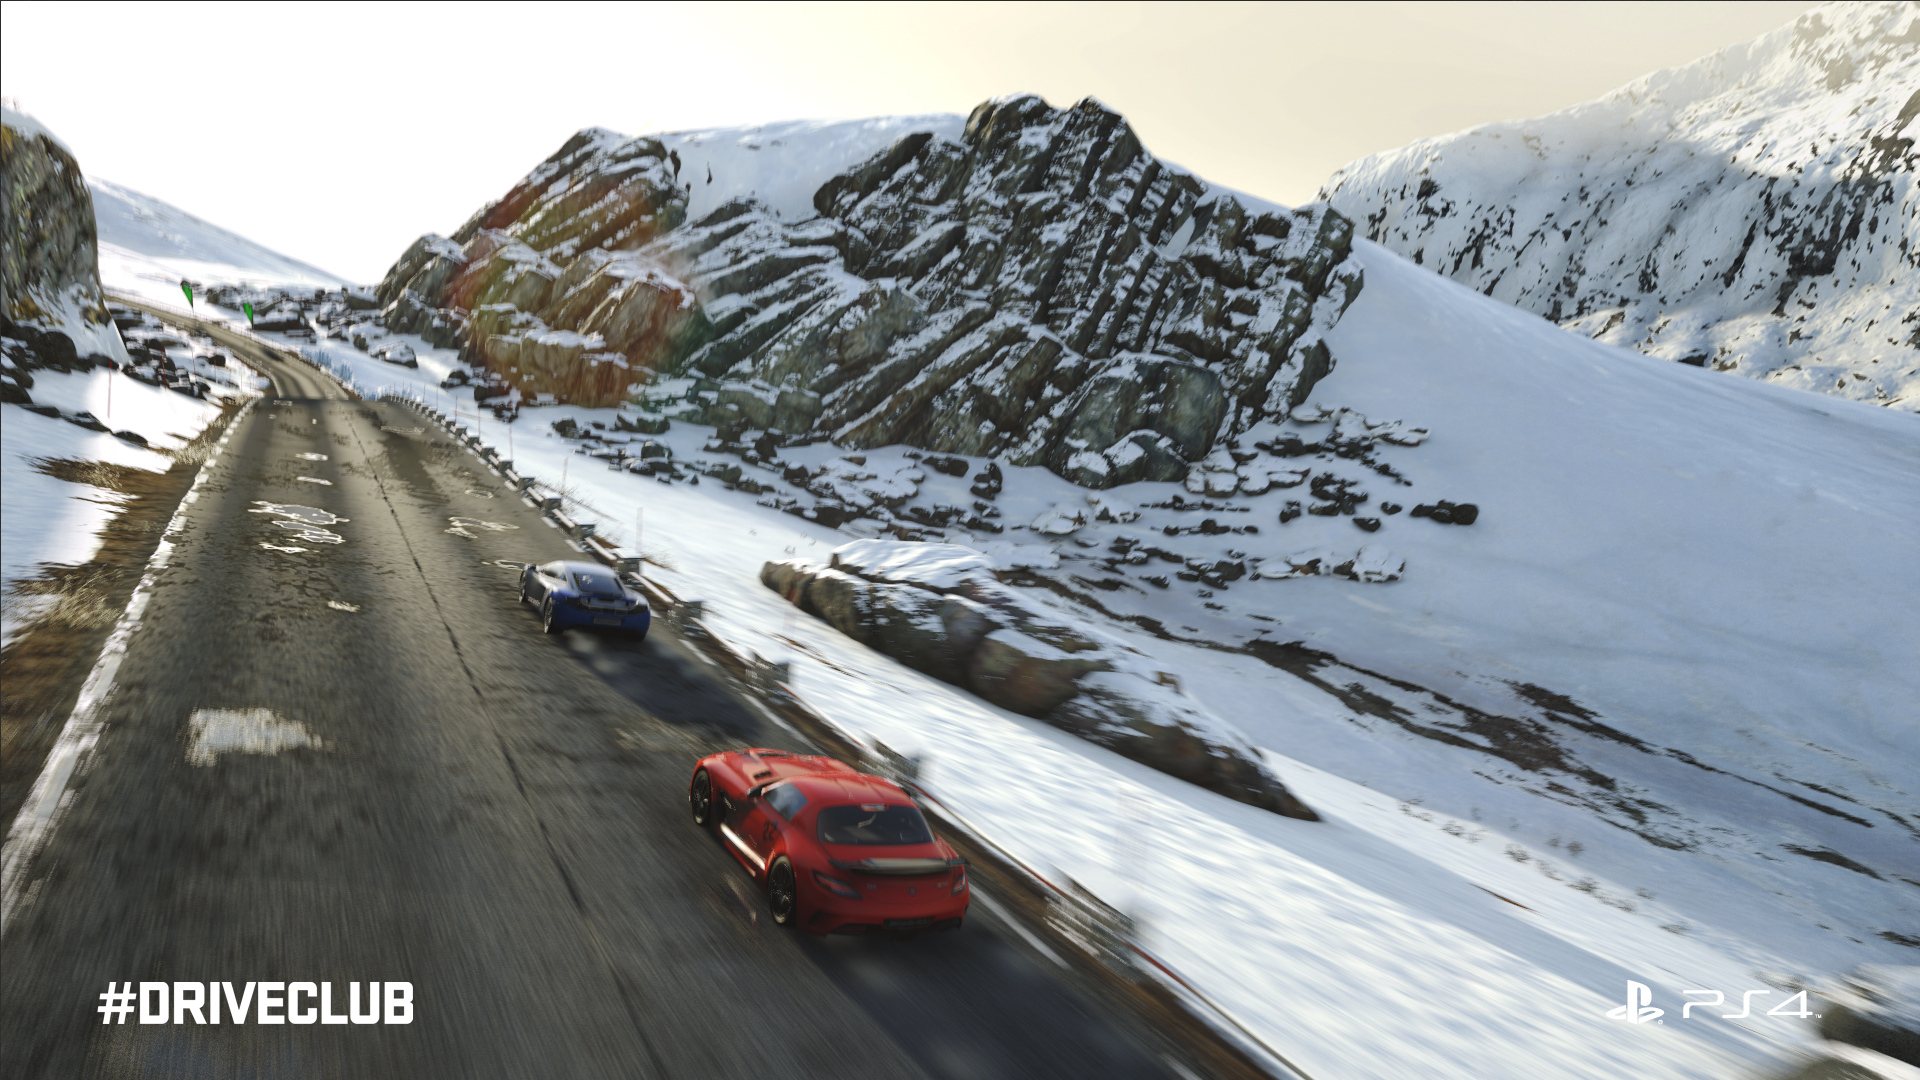 DriveClub update brings events as dev continues to add servers and tweak software